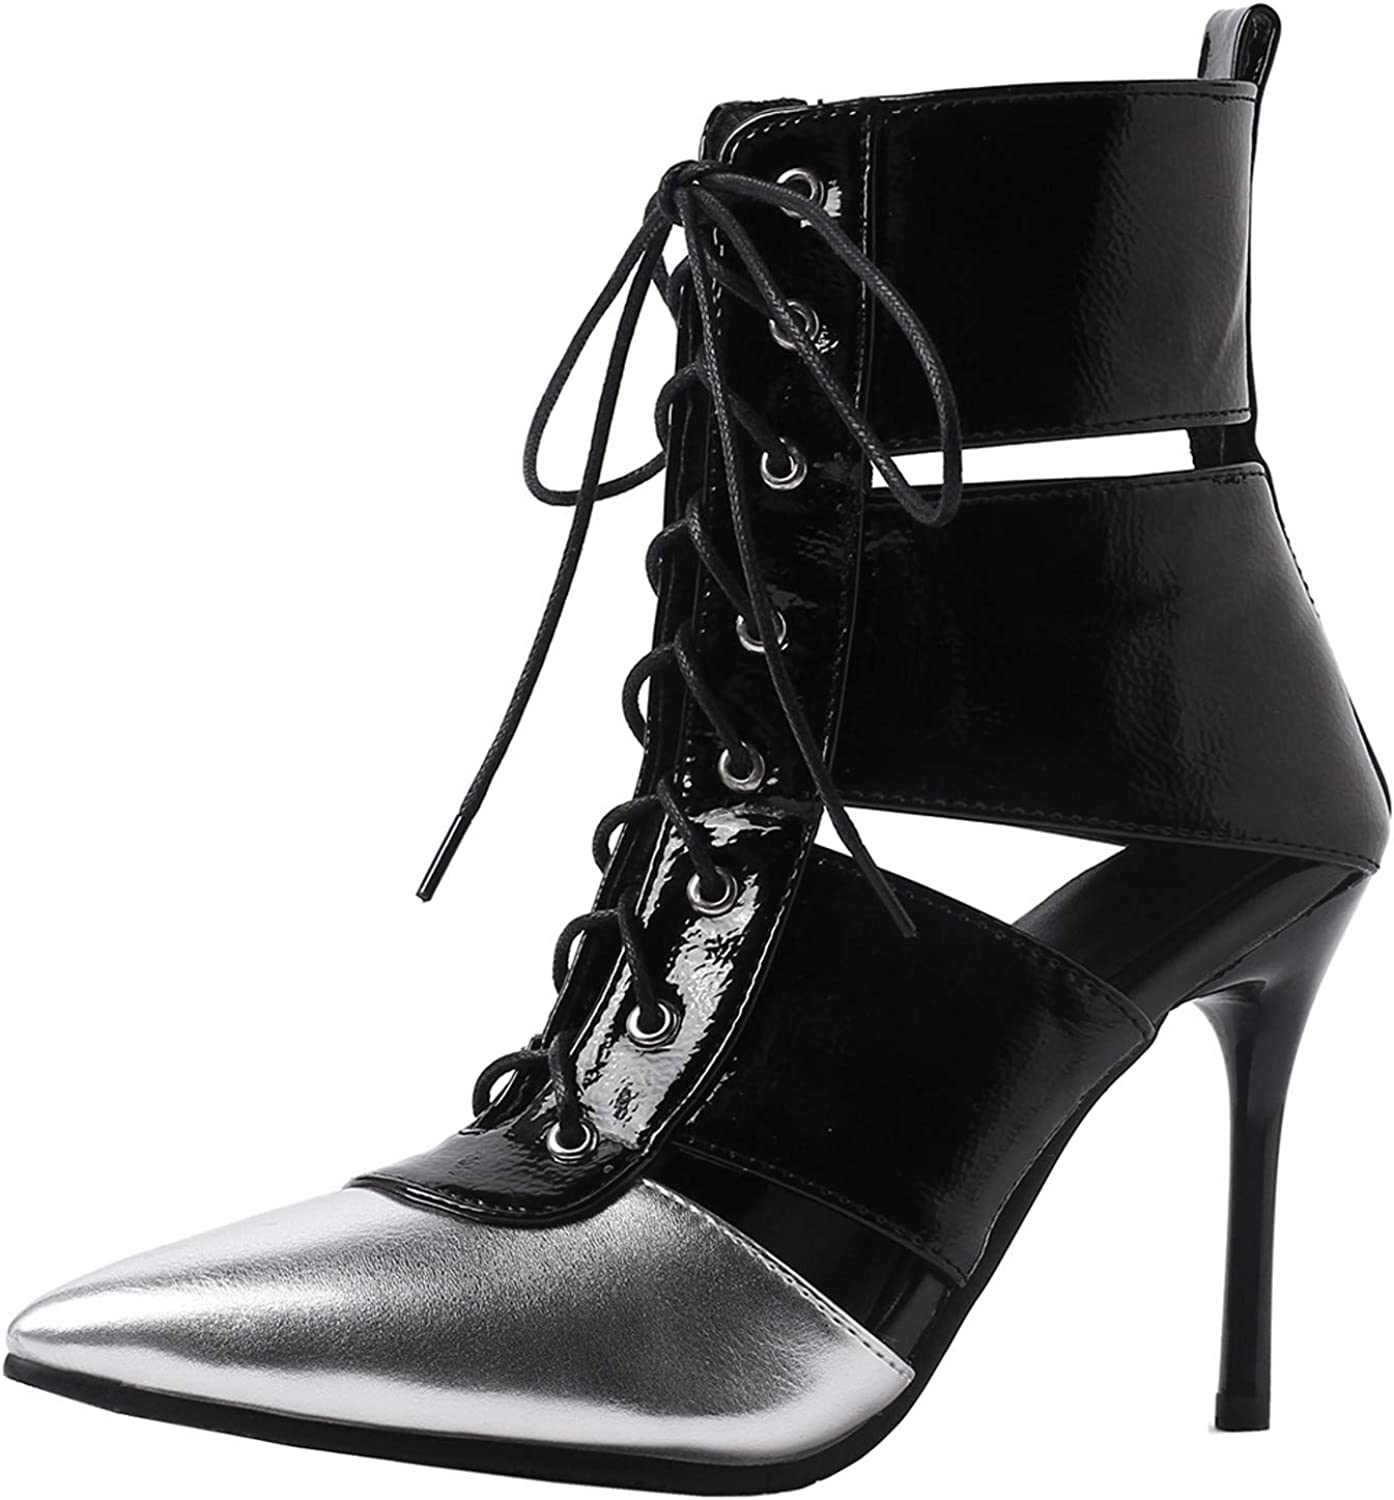 Rongzhi Womens Heeled Sandals Ankle Boots Stilettos High Heels Pointed Toe Lace Up Booties Pumps Flower